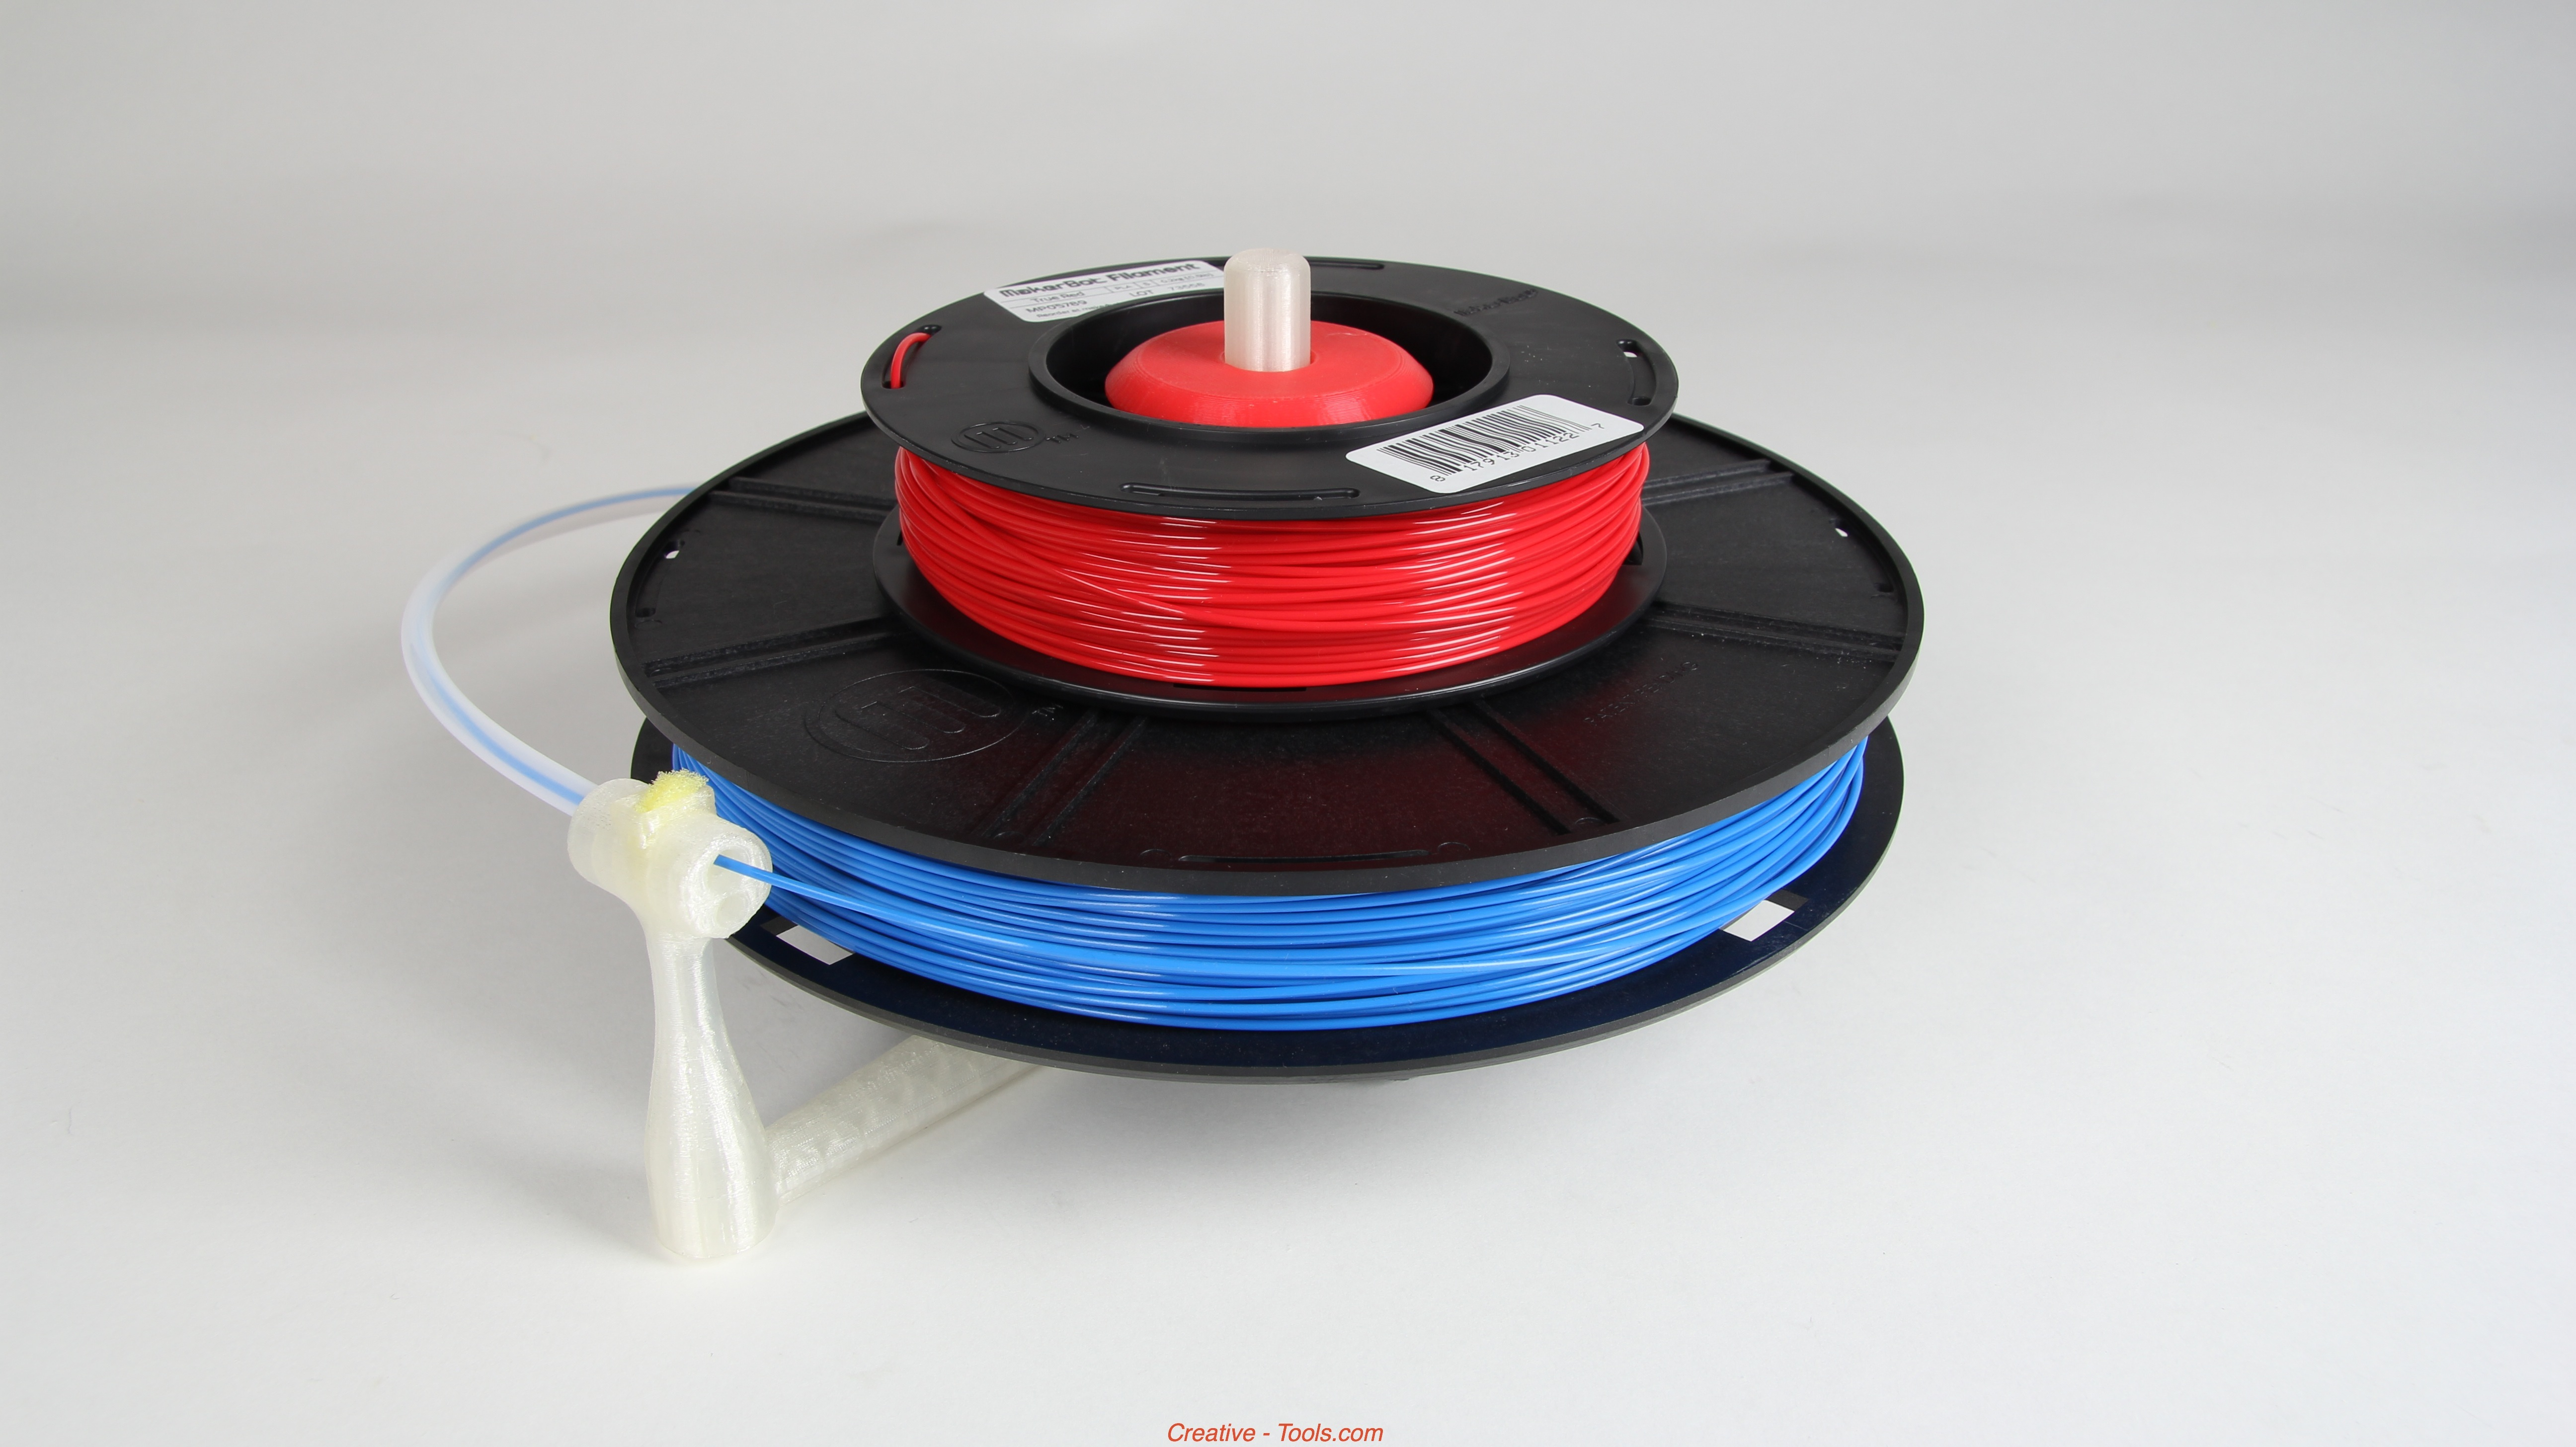 Picture of Fits Almost Any Filament Spool Size!